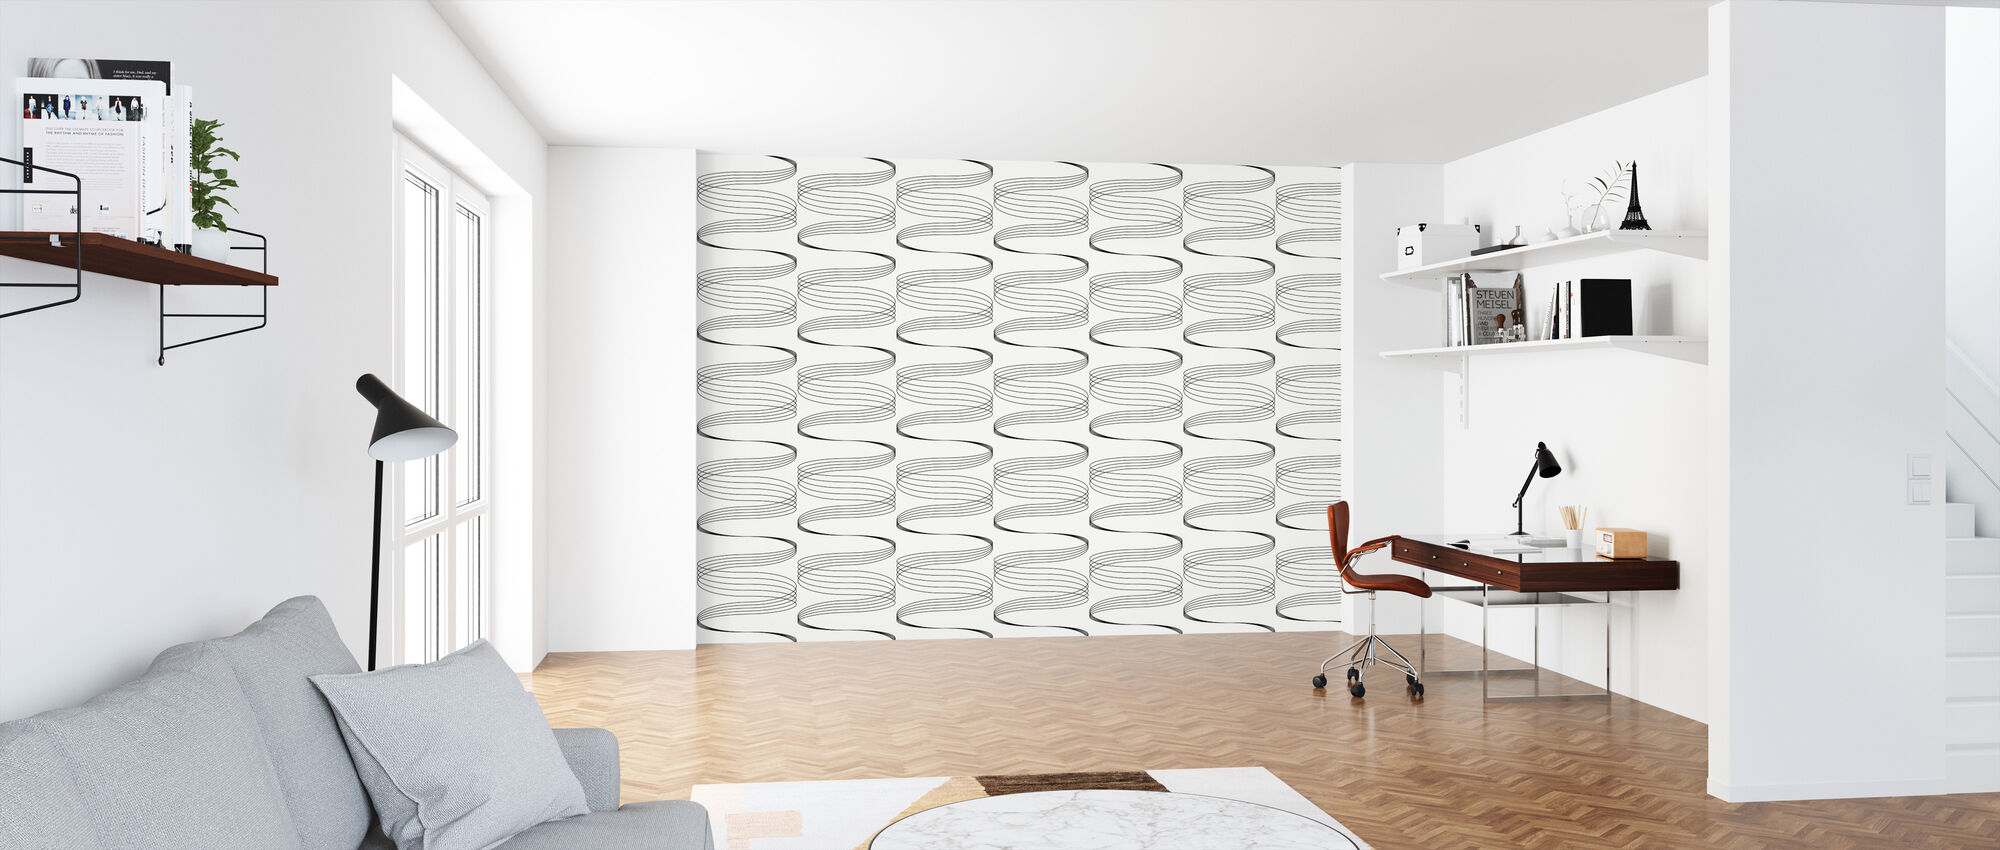 Swirle - White and Black - Wallpaper - Office